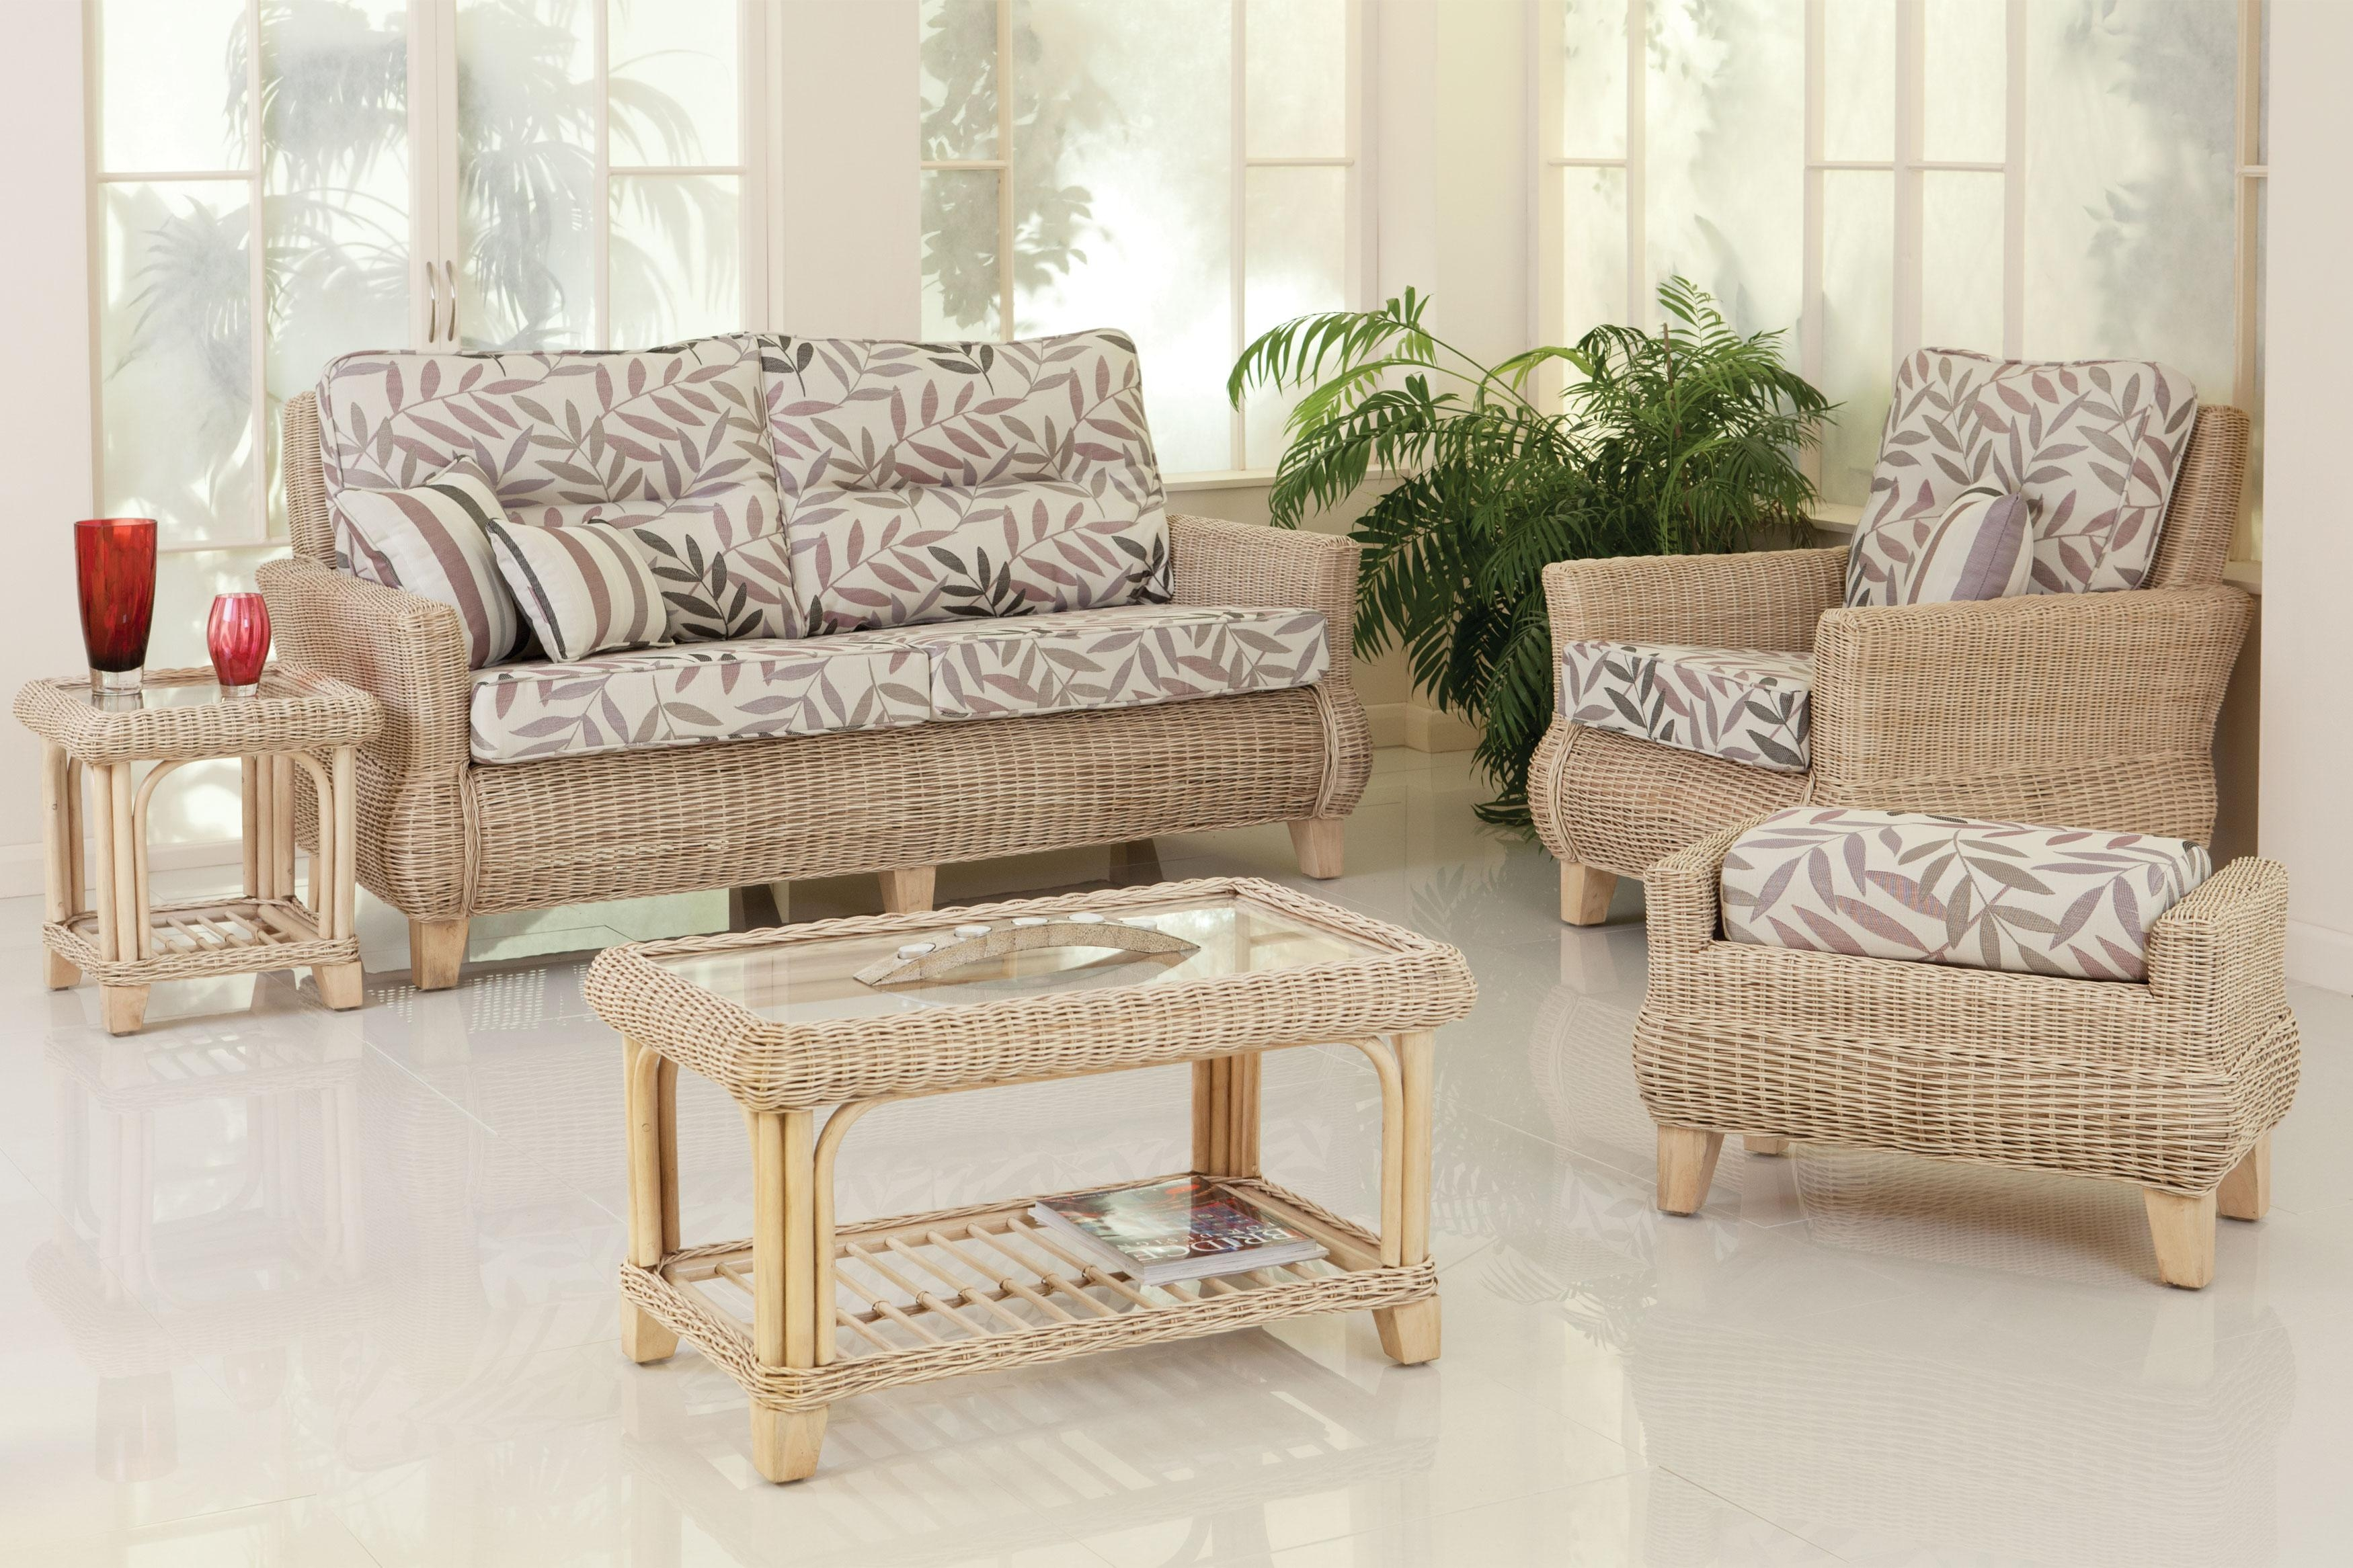 Cane Sofa Set With Ideas Hd Photos 46955 | Kengire For Ken Sofa Sets (Image 10 of 20)